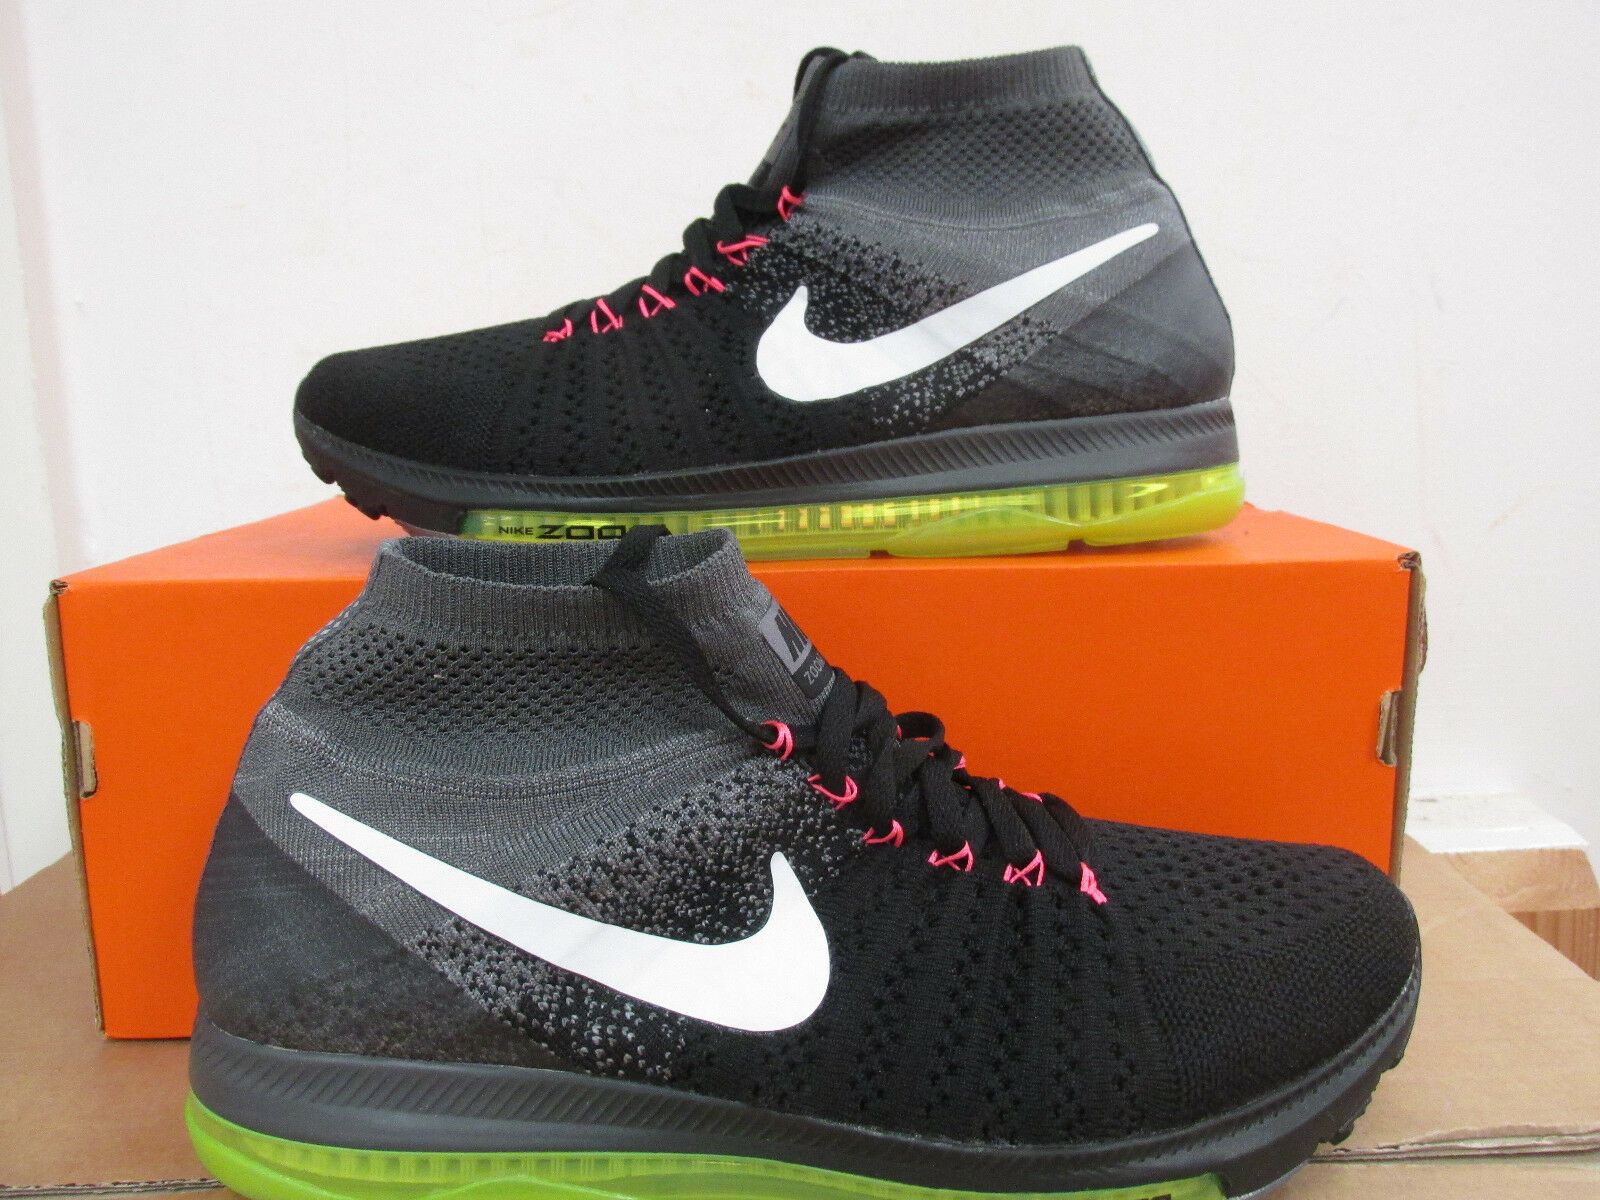 Nike Zoom All Out Flyknit homme fonctionnement Trainers 844134 002 Sneakers CLEARANCE